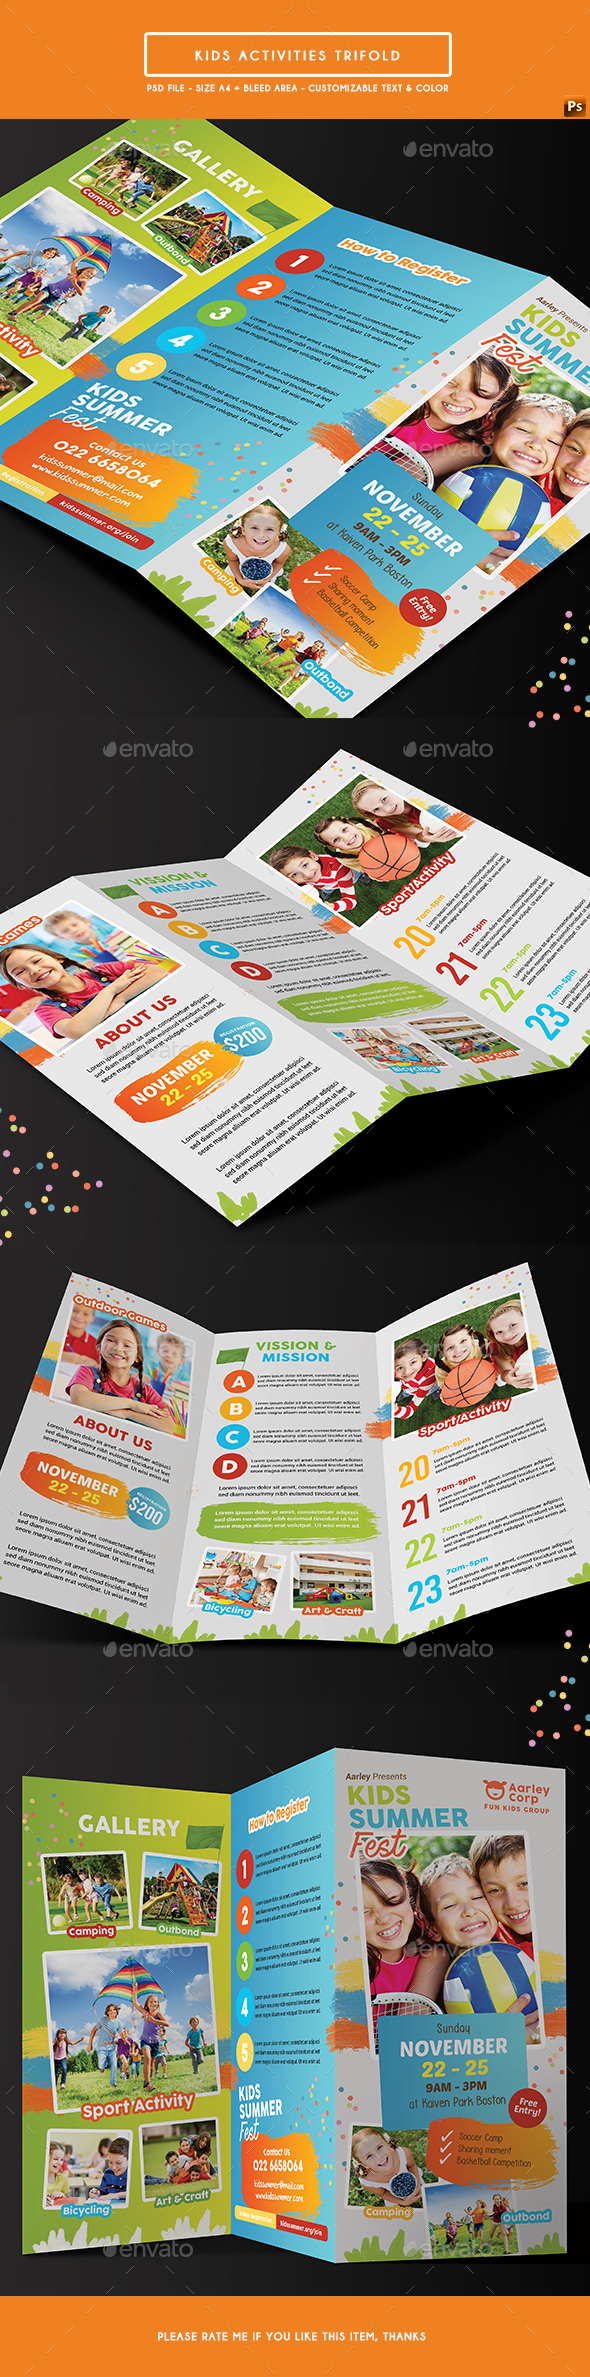 Kids Activities Trifold - Corporate Flyers